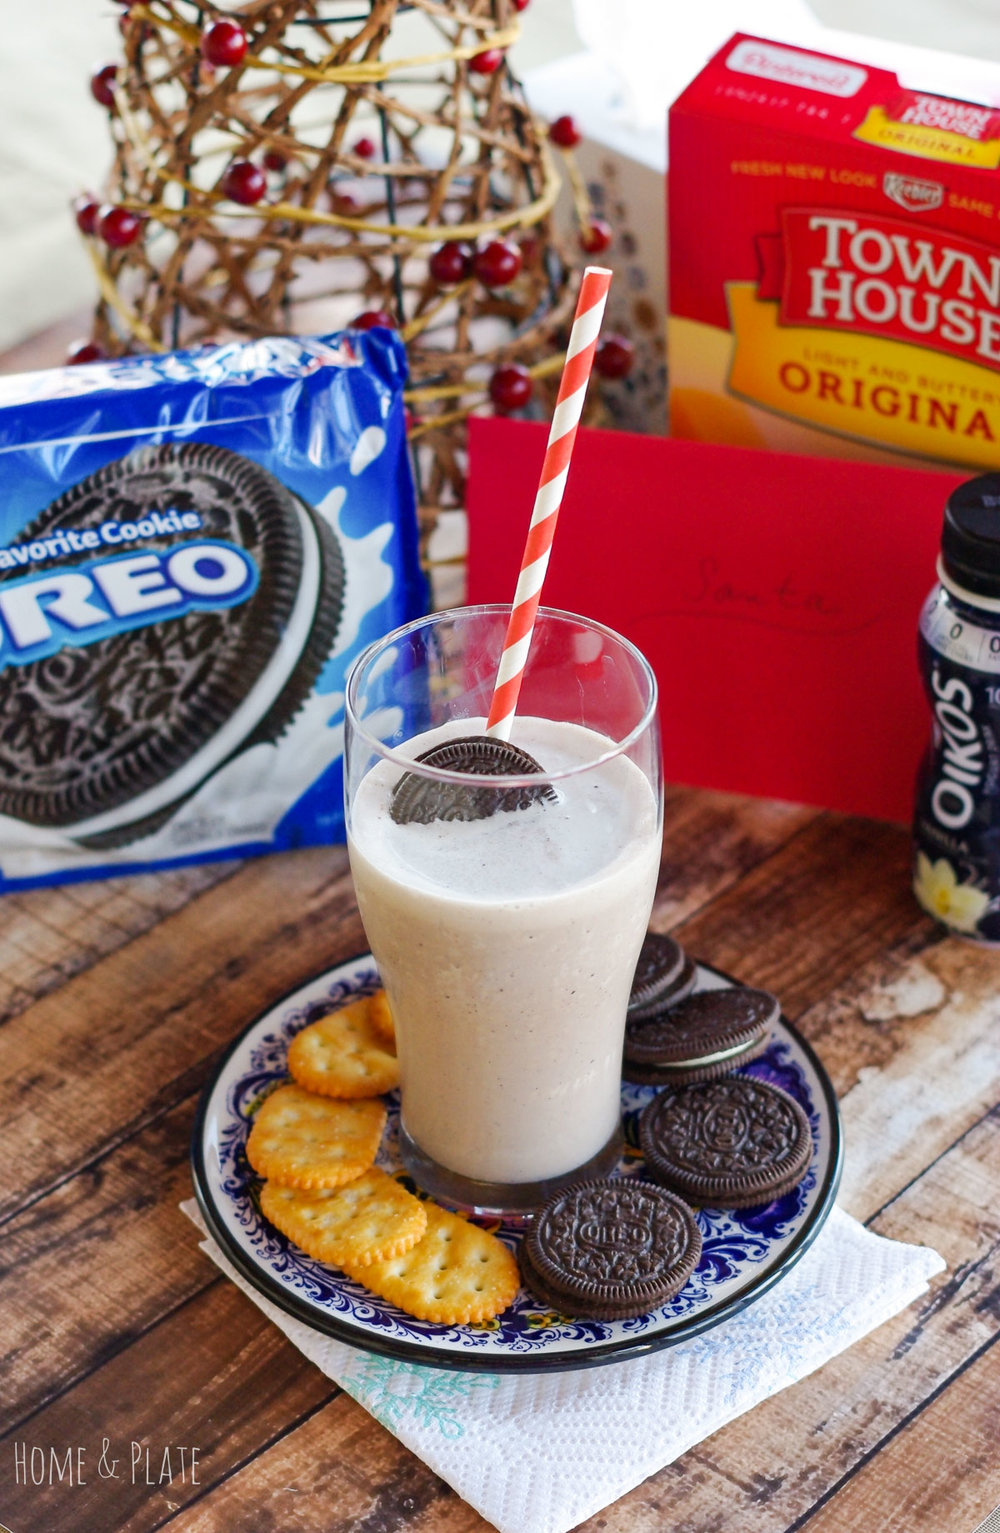 Oreo Frozen Yogurt Milkshakes | www.homeandplate.com | Surprise Santa with an Oreo milkshake made fresh with vanilla bean frozen yogurt and Oreo cookies. #ad #MerryMeals